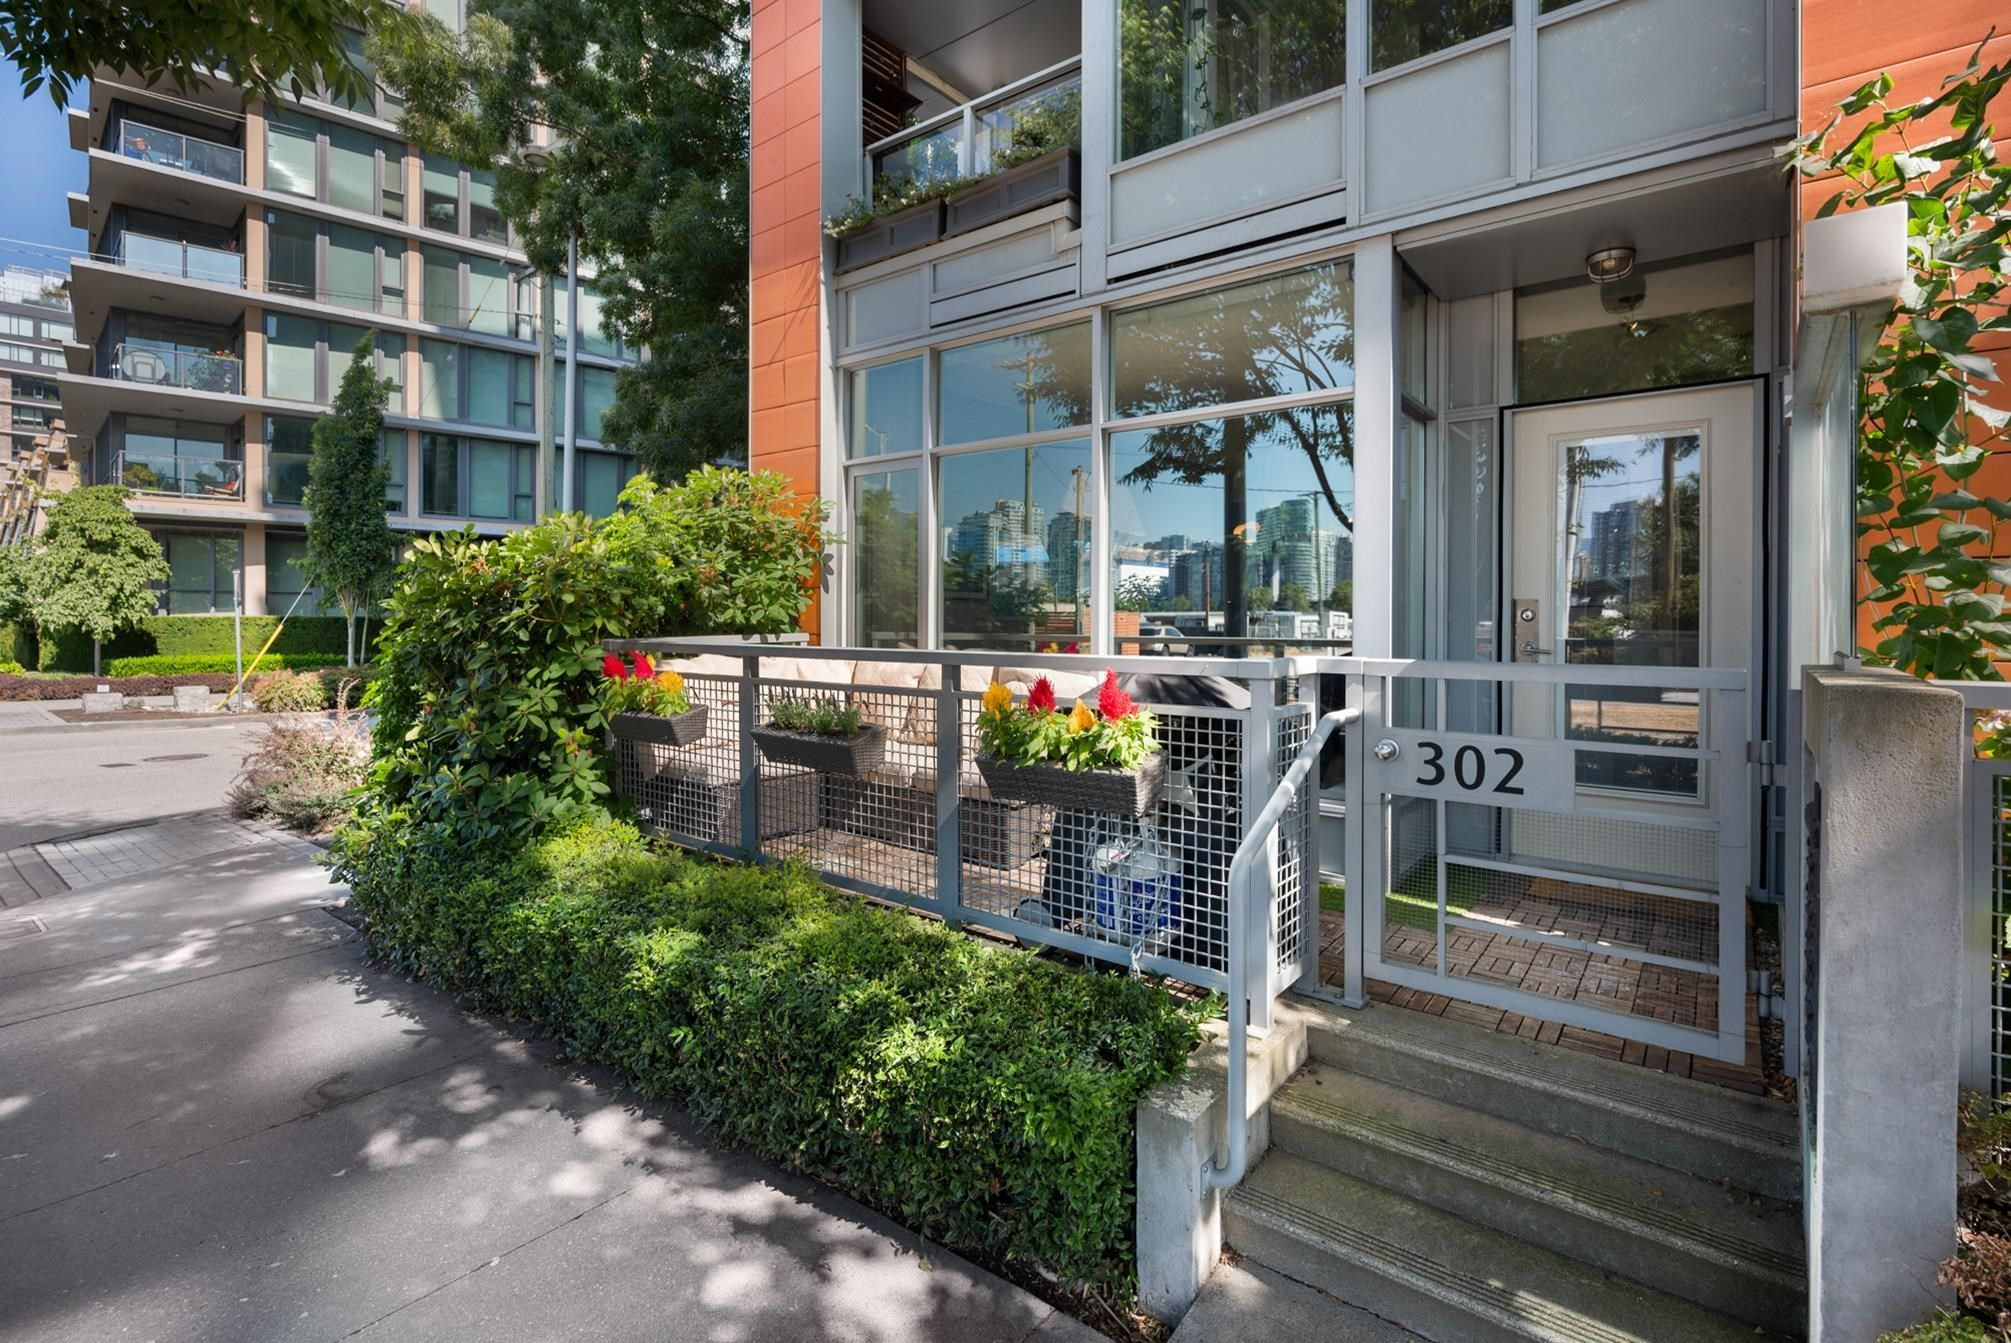 """Main Photo: 302 W 1ST Avenue in Vancouver: False Creek Townhouse for sale in """"FOUNDRY"""" (Vancouver West)  : MLS®# R2625350"""